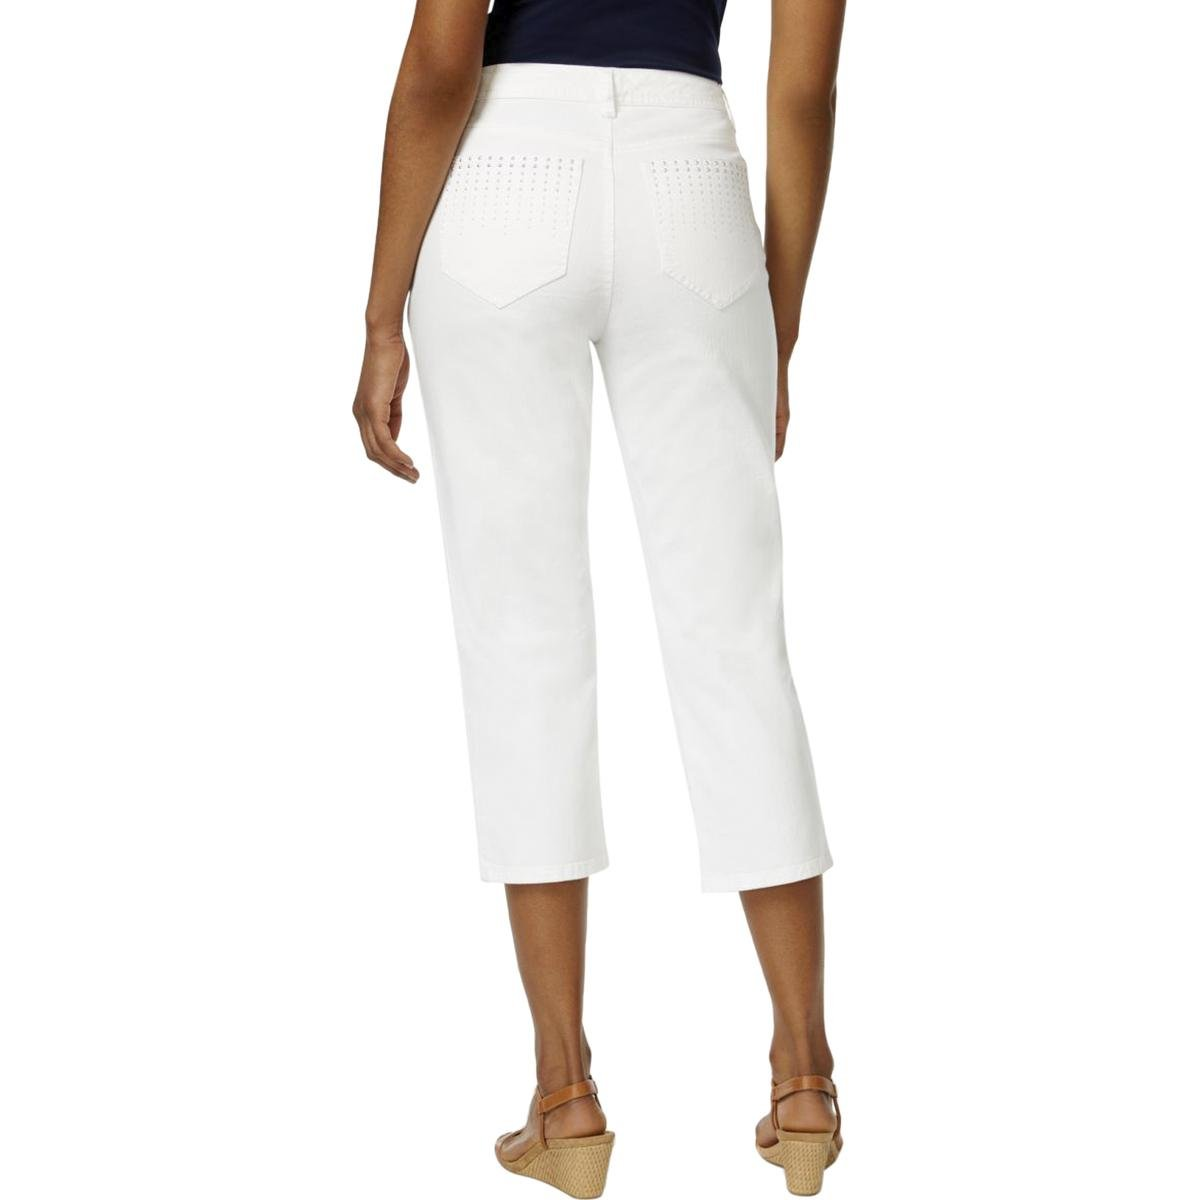 JM Collection Womens Embellished High Rise Capri Jeans White 14